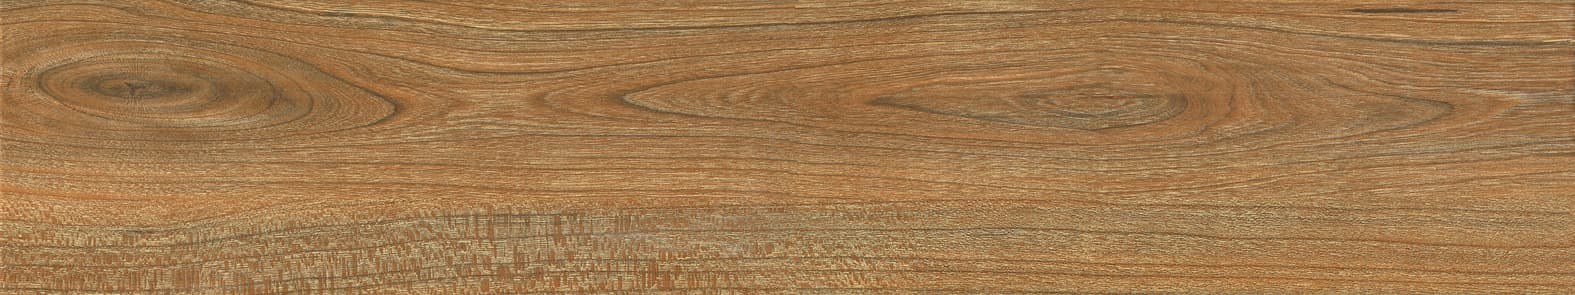 wooden ceramic design floor tile for new products